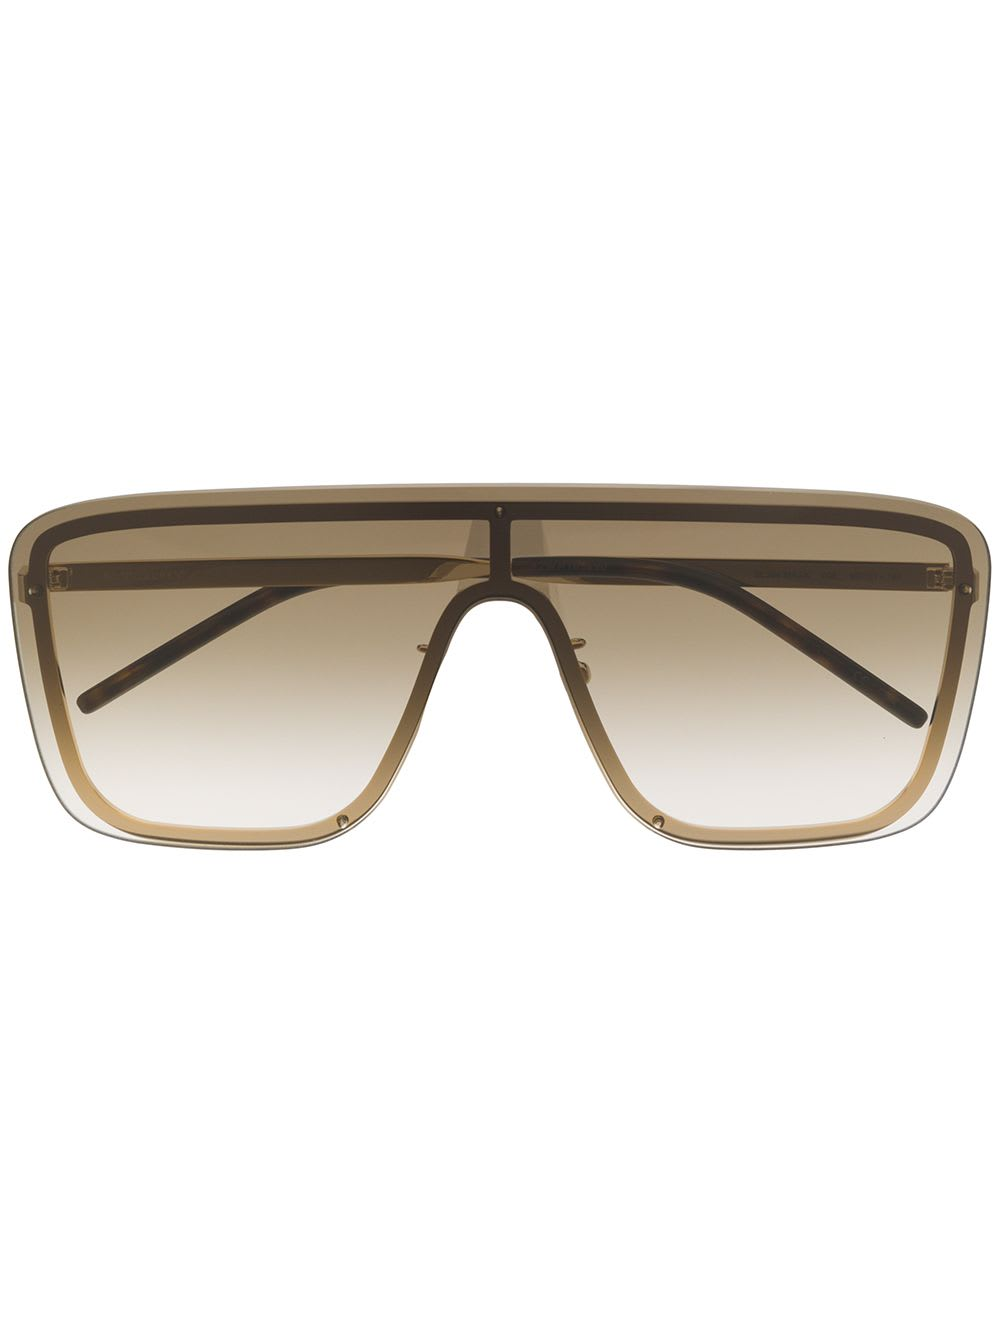 Brown Gold Woman Sl 364 Sunglasses